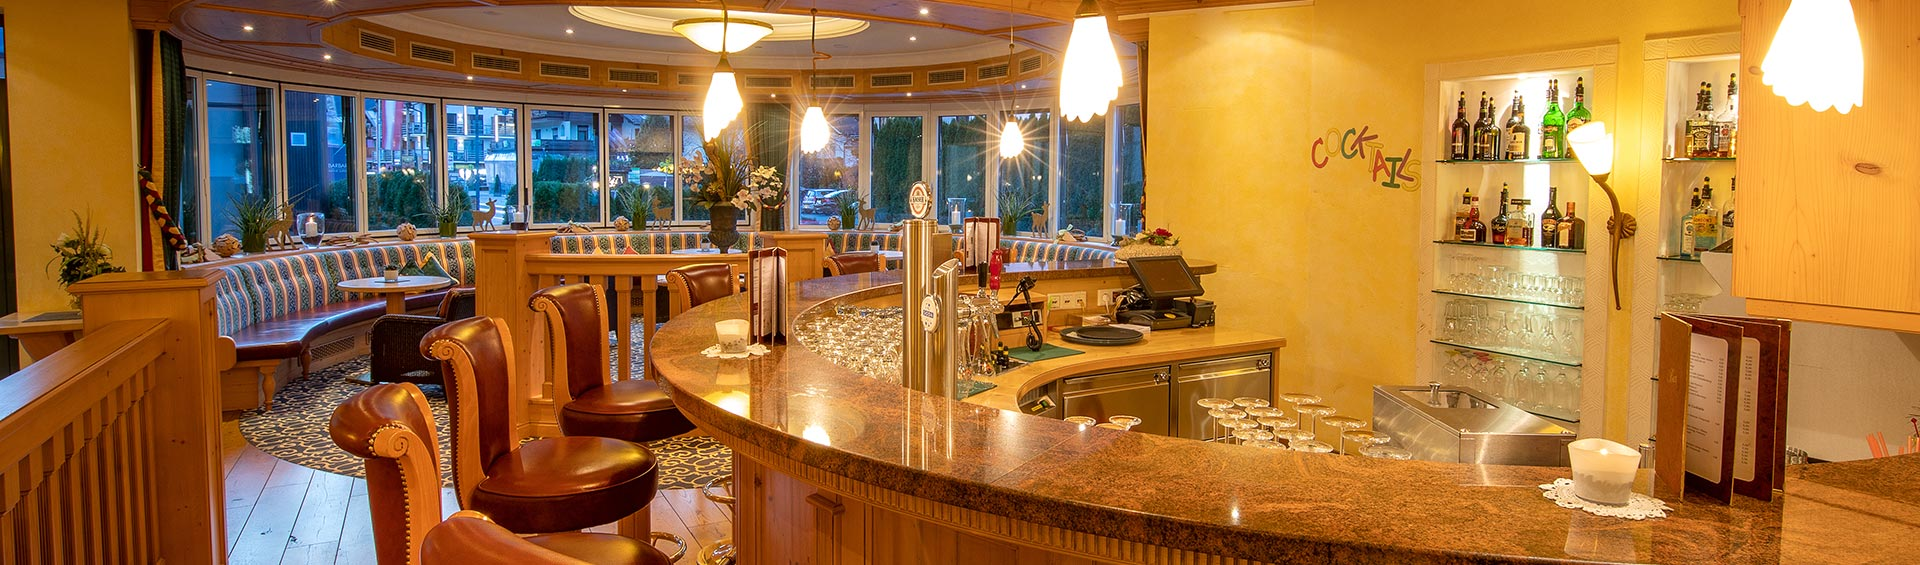 Hotel bar and conservatory